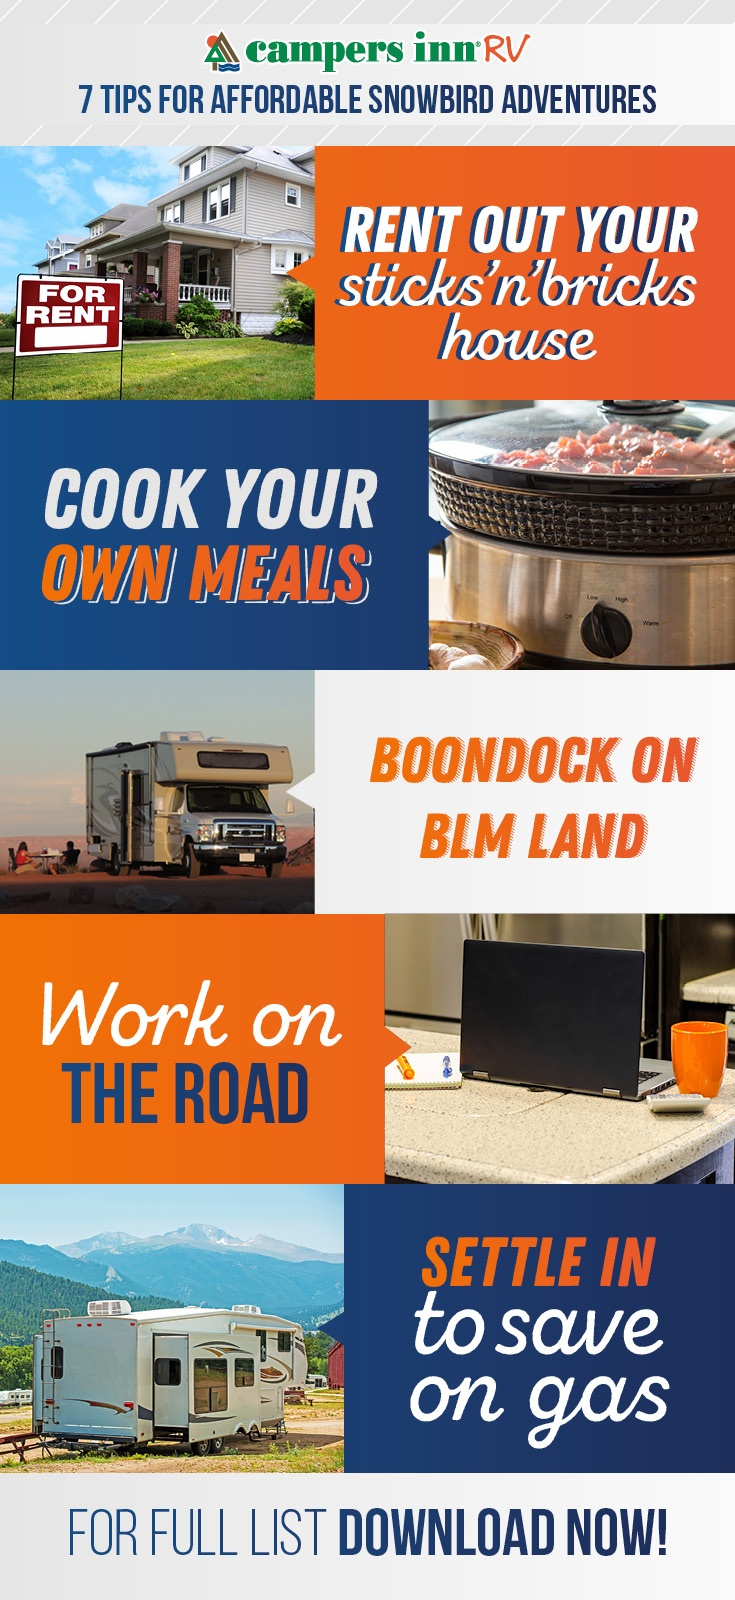 Learn how to save on your snowbird trip by boondocking on BLM land, cooking your food and more